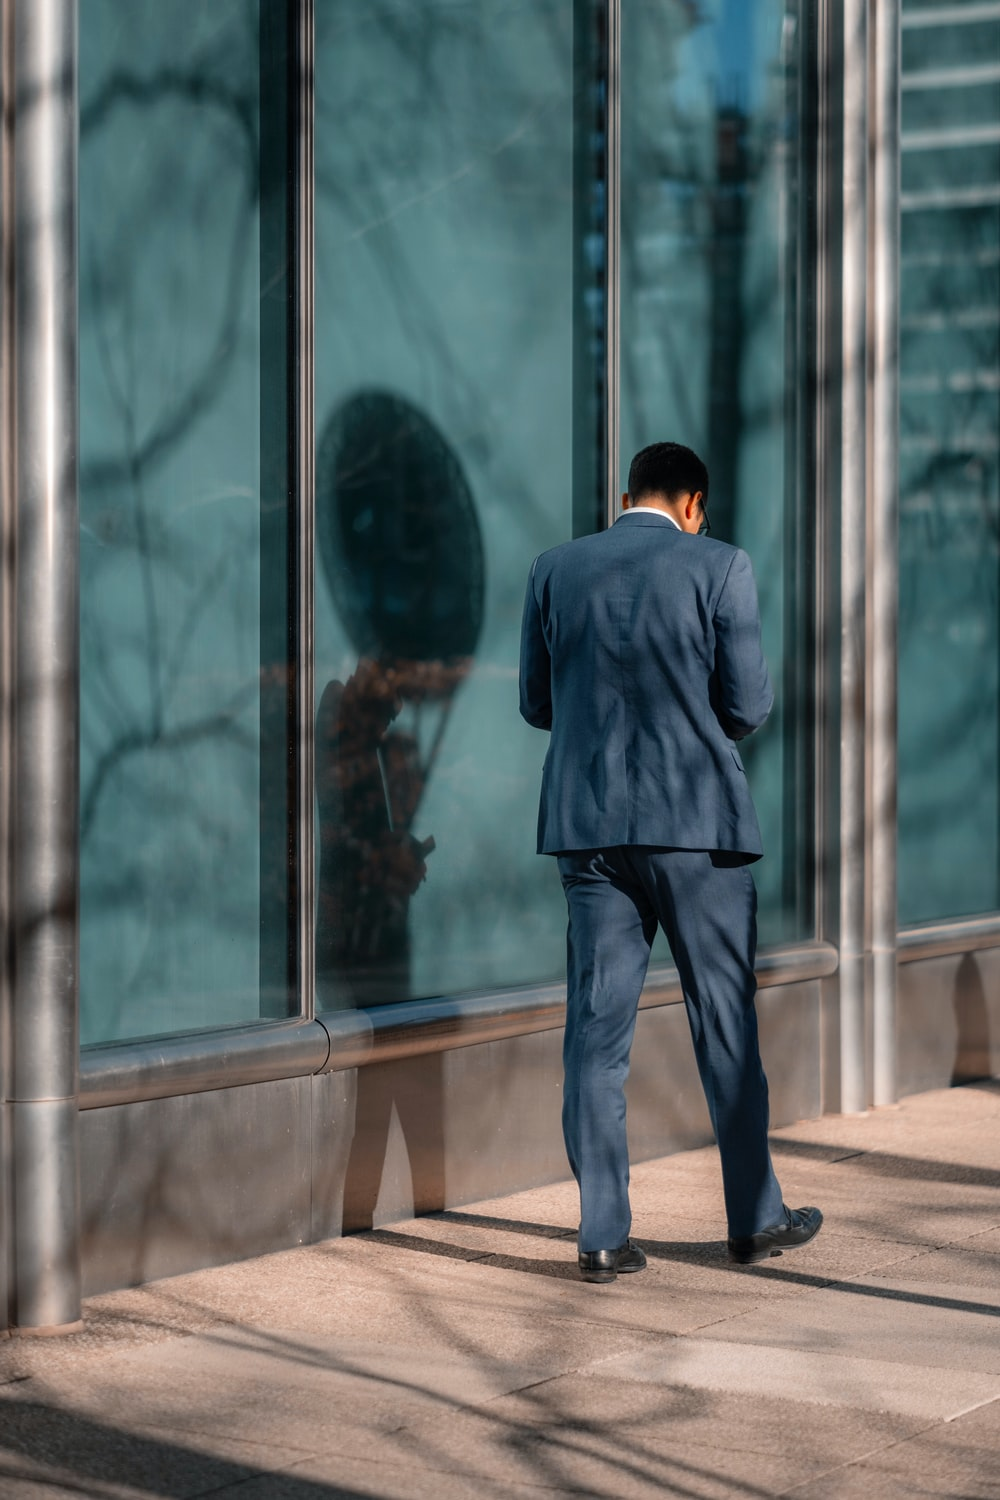 man standing near glass wall